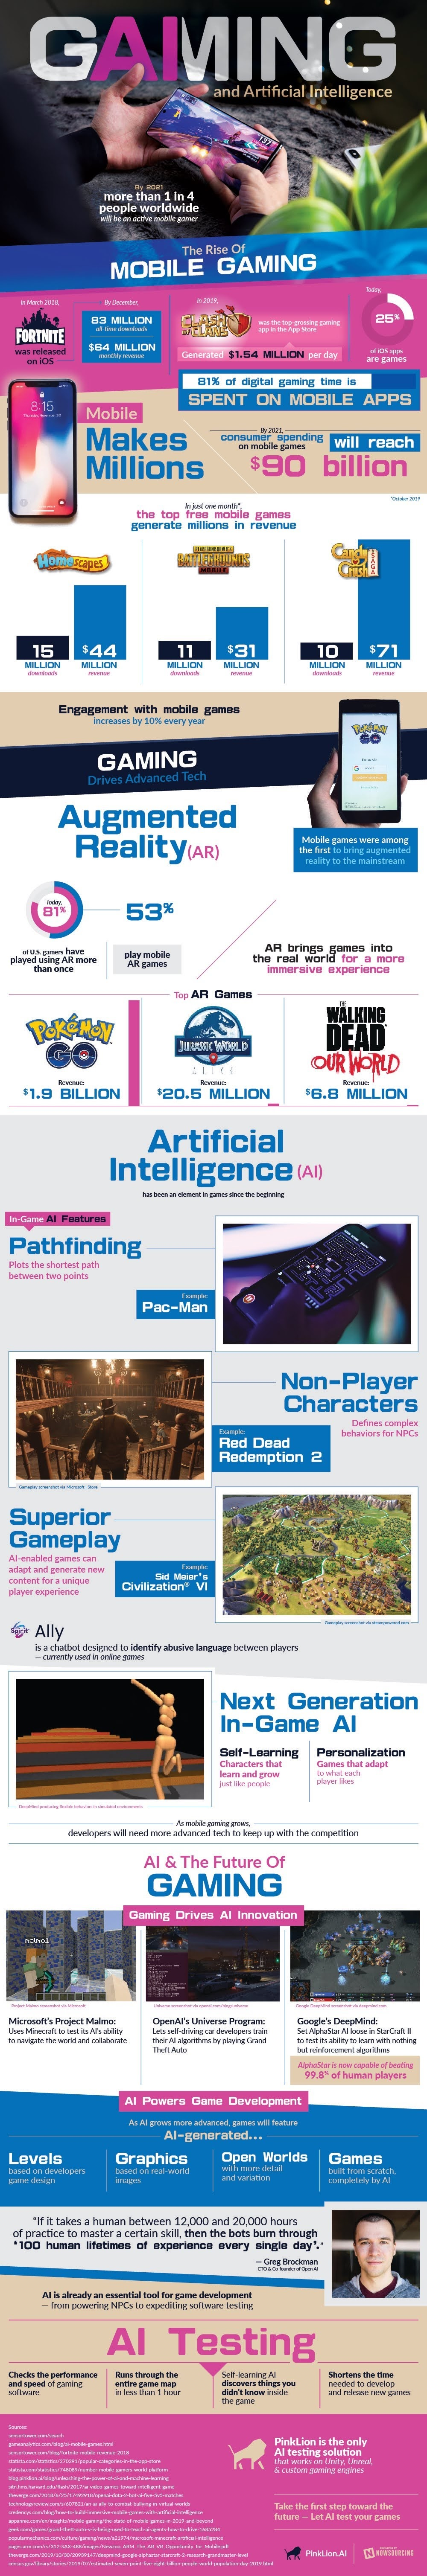 Technology That Improves Mobile Gaming #infographic